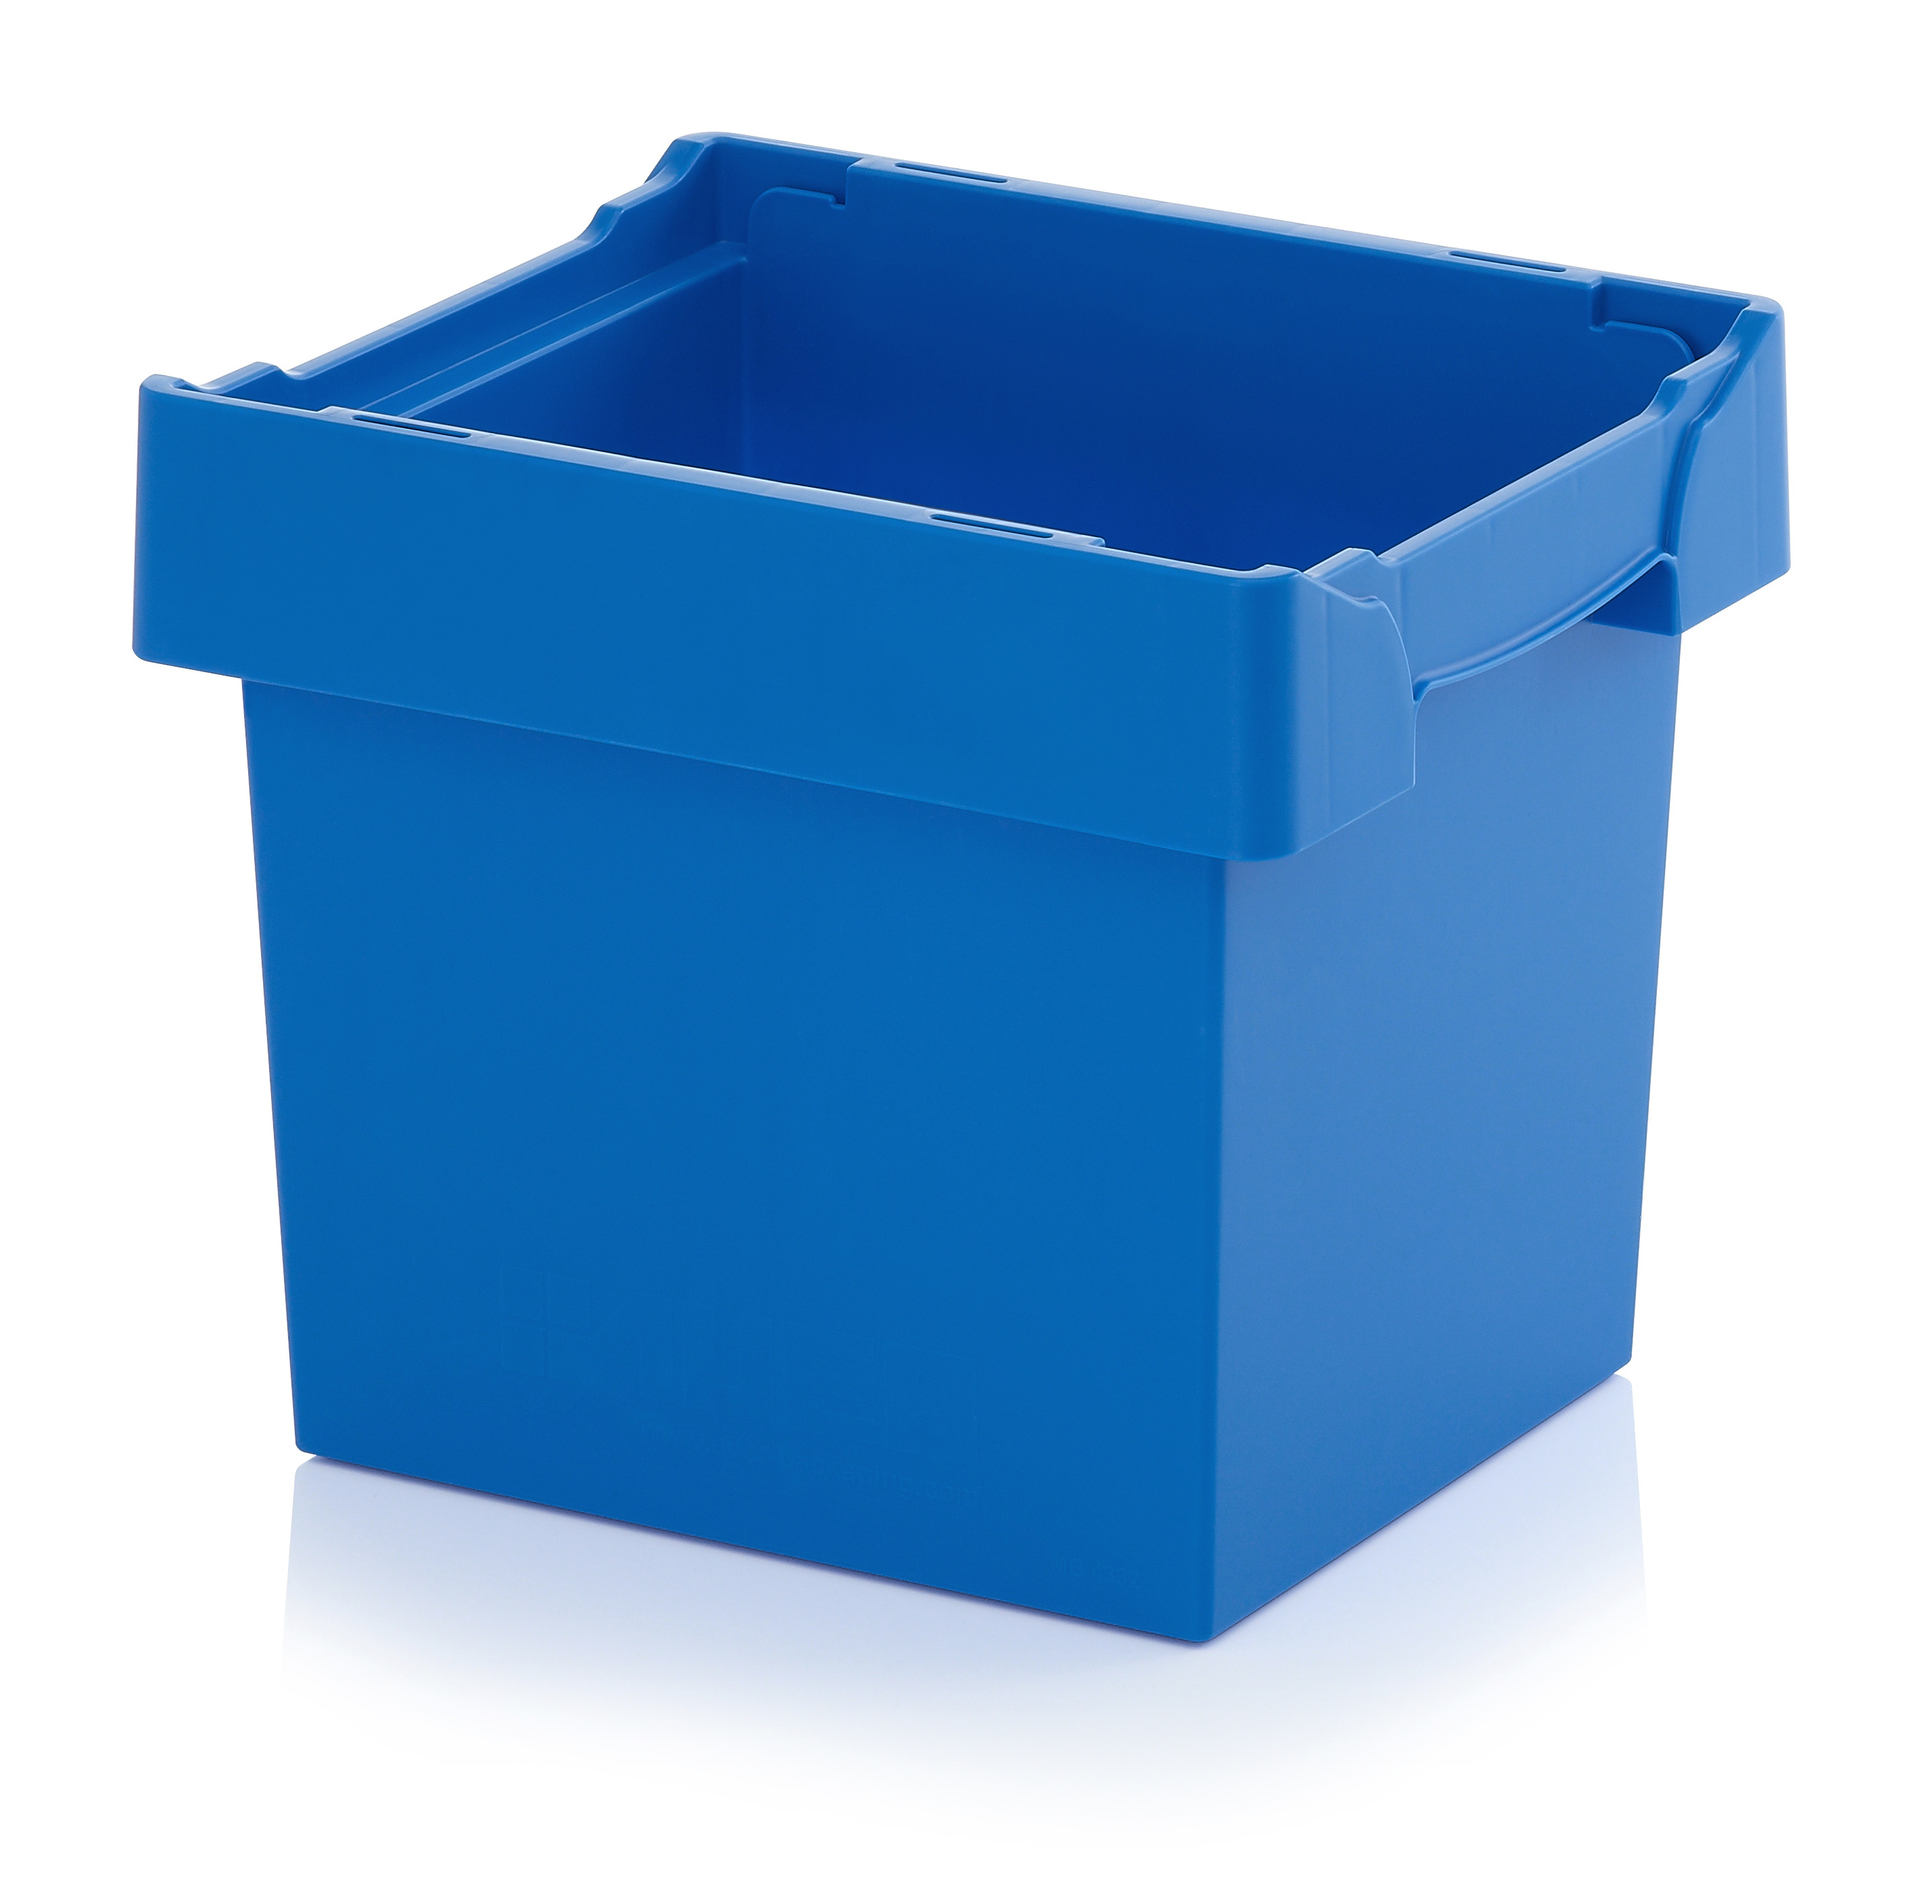 RC4320 Reusable Containers - Plastic Mouldings Northern